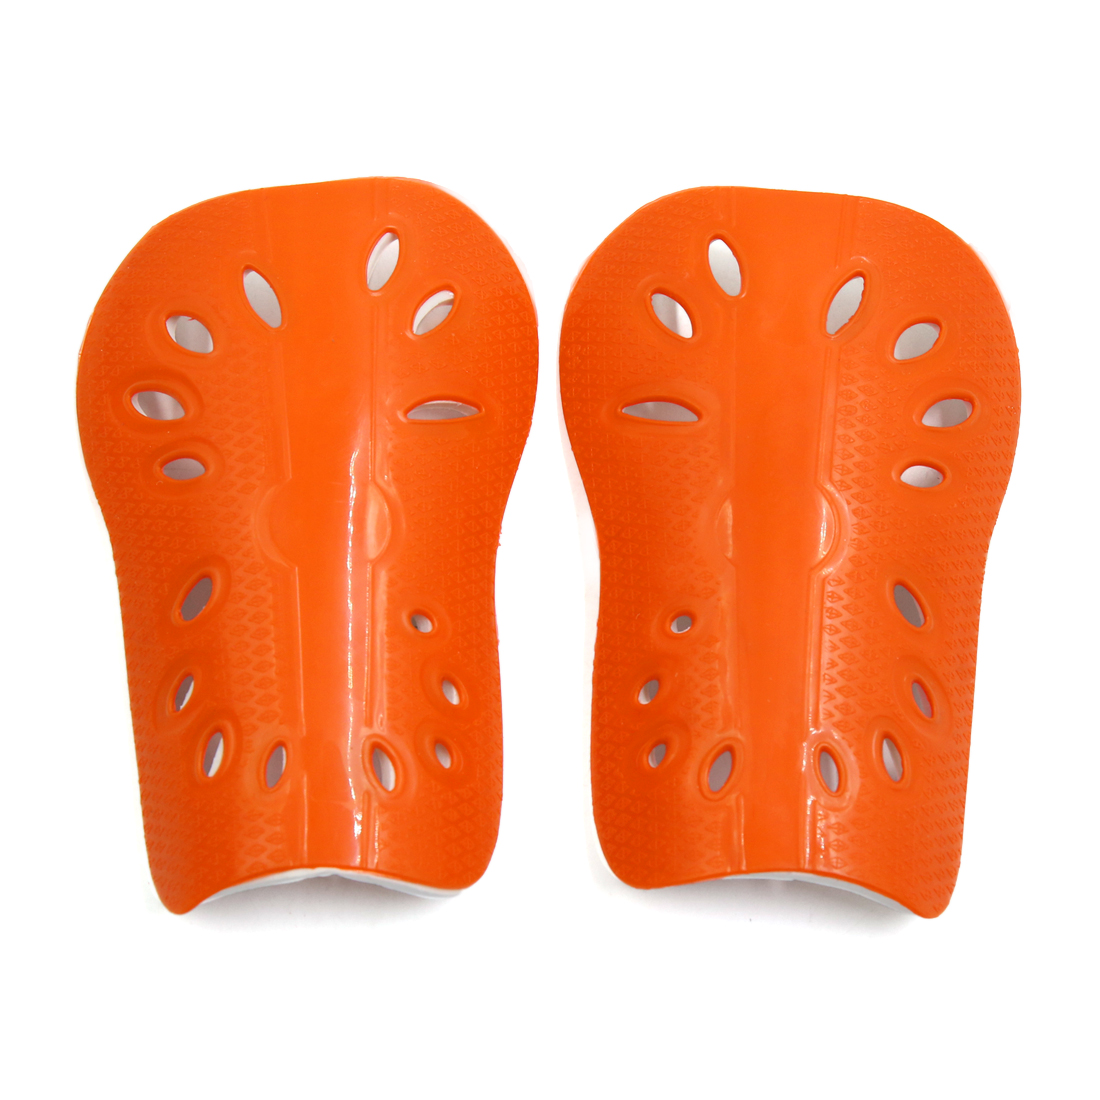 1 Pair Fluorescent Orange Kids Football Outdoor Sports Shin Pad Protective Gear Legs Guards